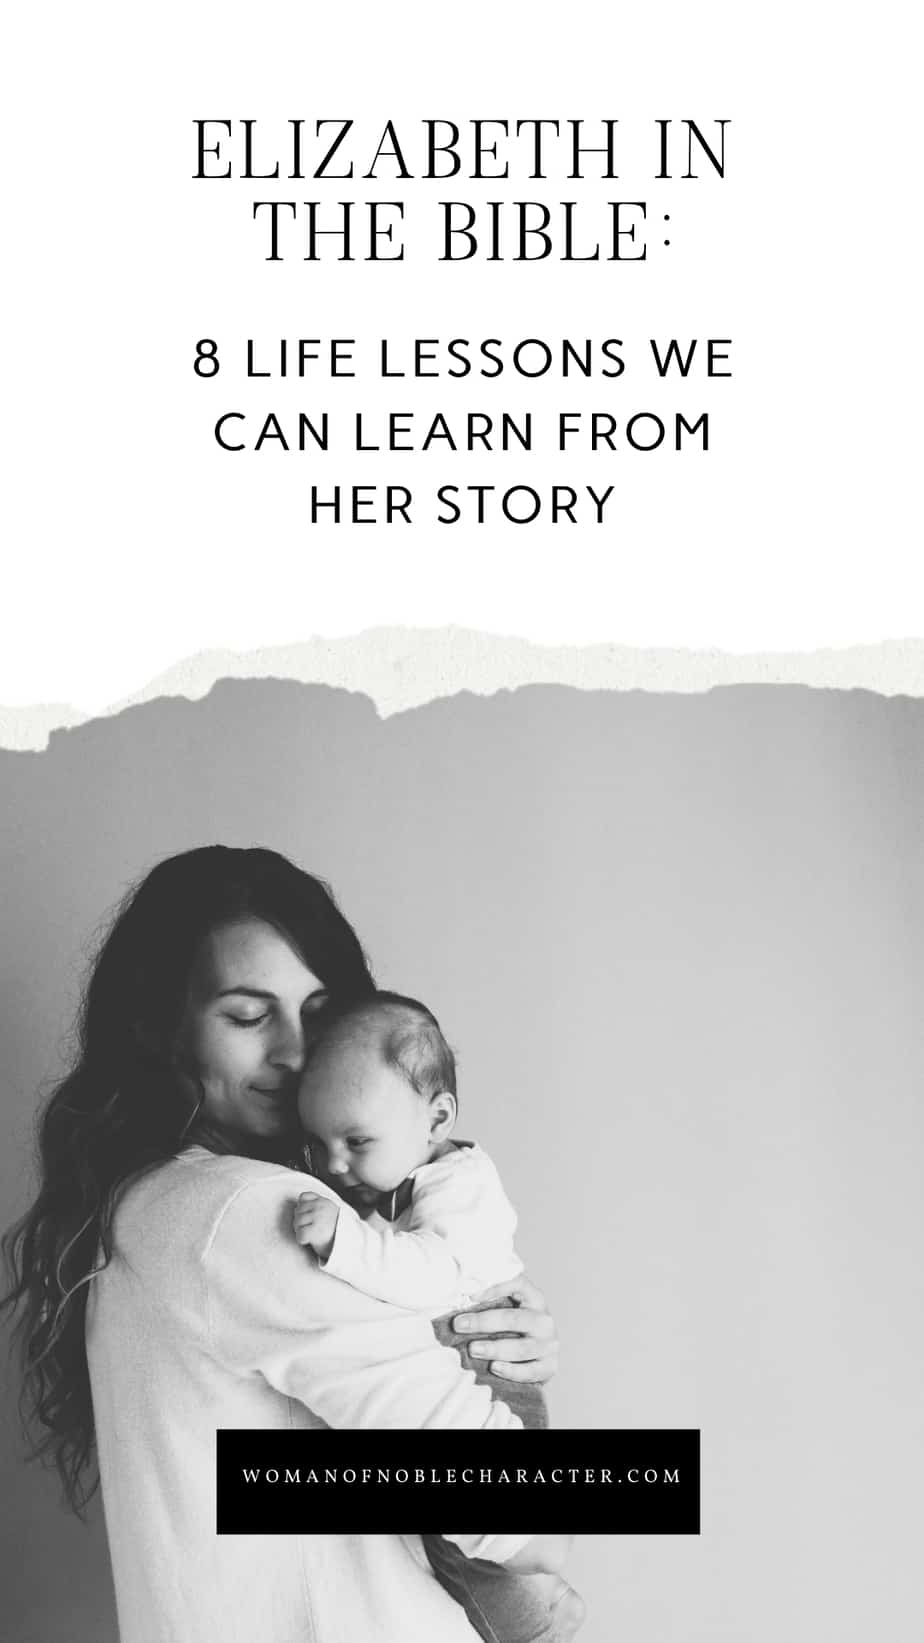 An image of a mother holding her baby with an overlay of text that says ,